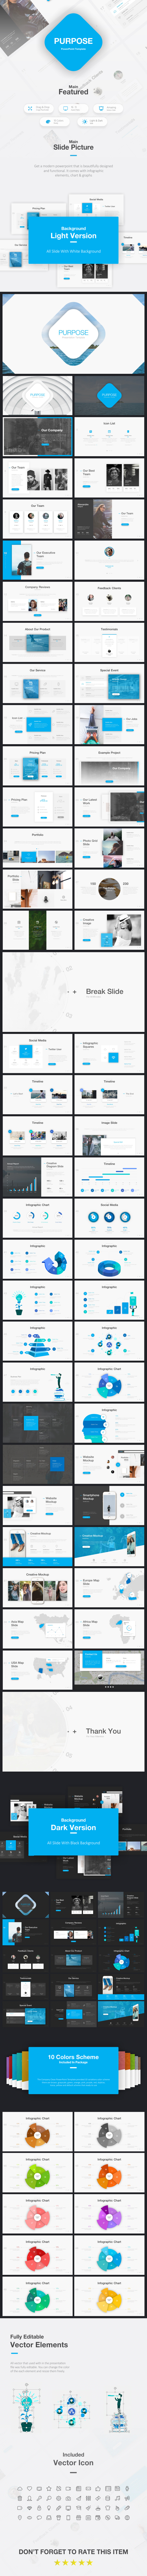 Purpose Presentation Template - Business PowerPoint Templates